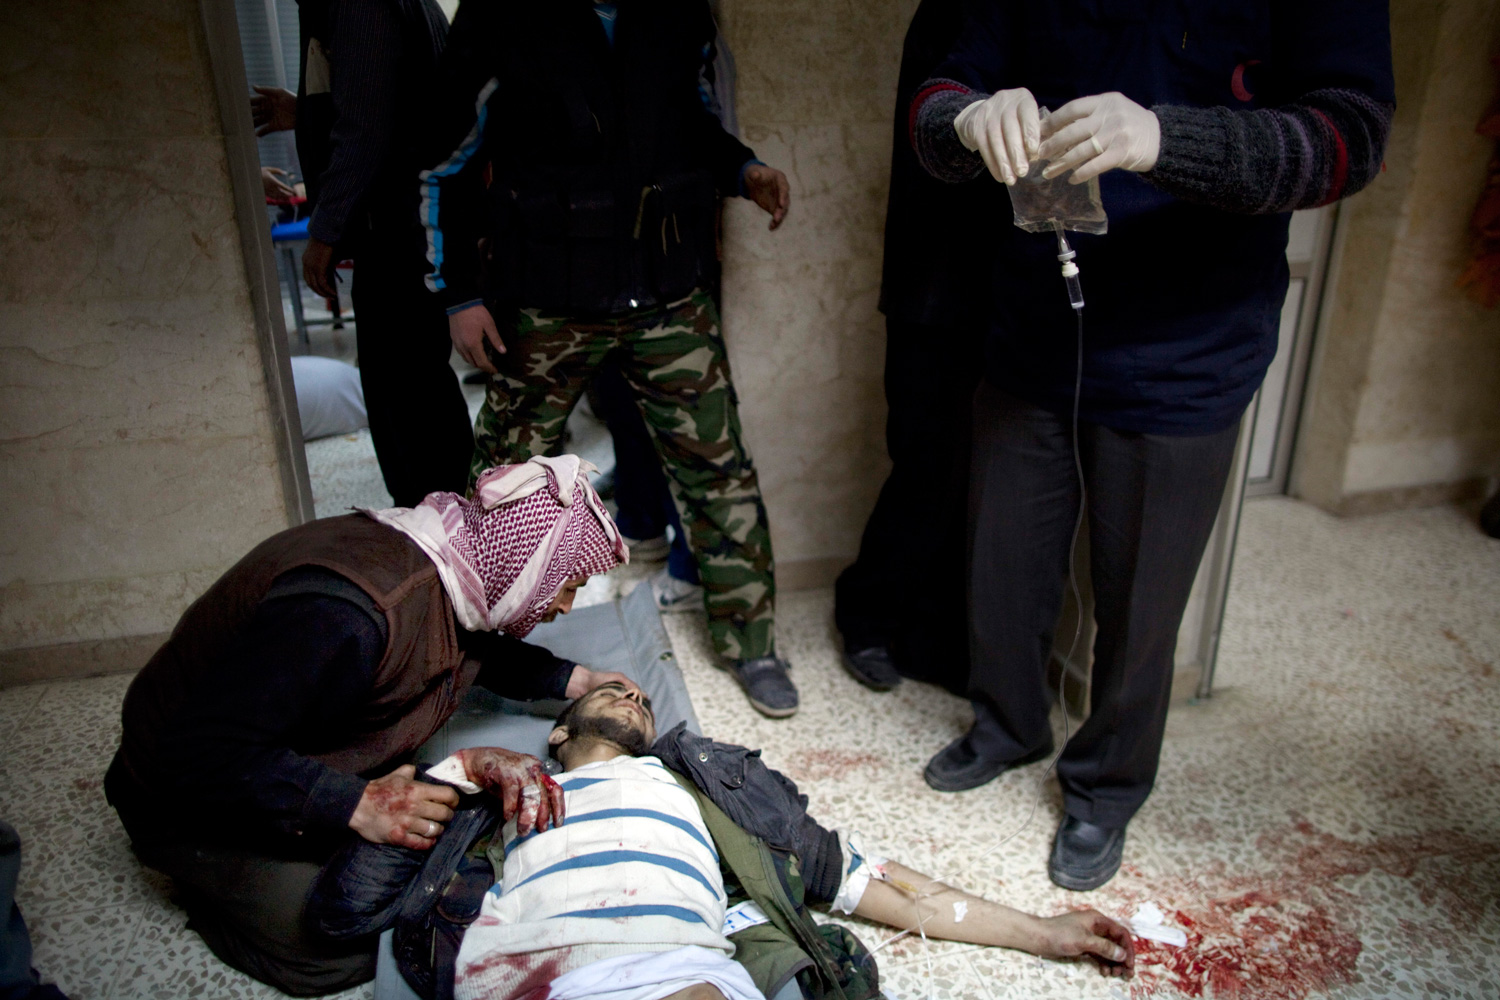 March 11, 2012.  A man tries to help a Syrian rebel after being wounded by fragments of an exploding shell in Idlib, north Syria.